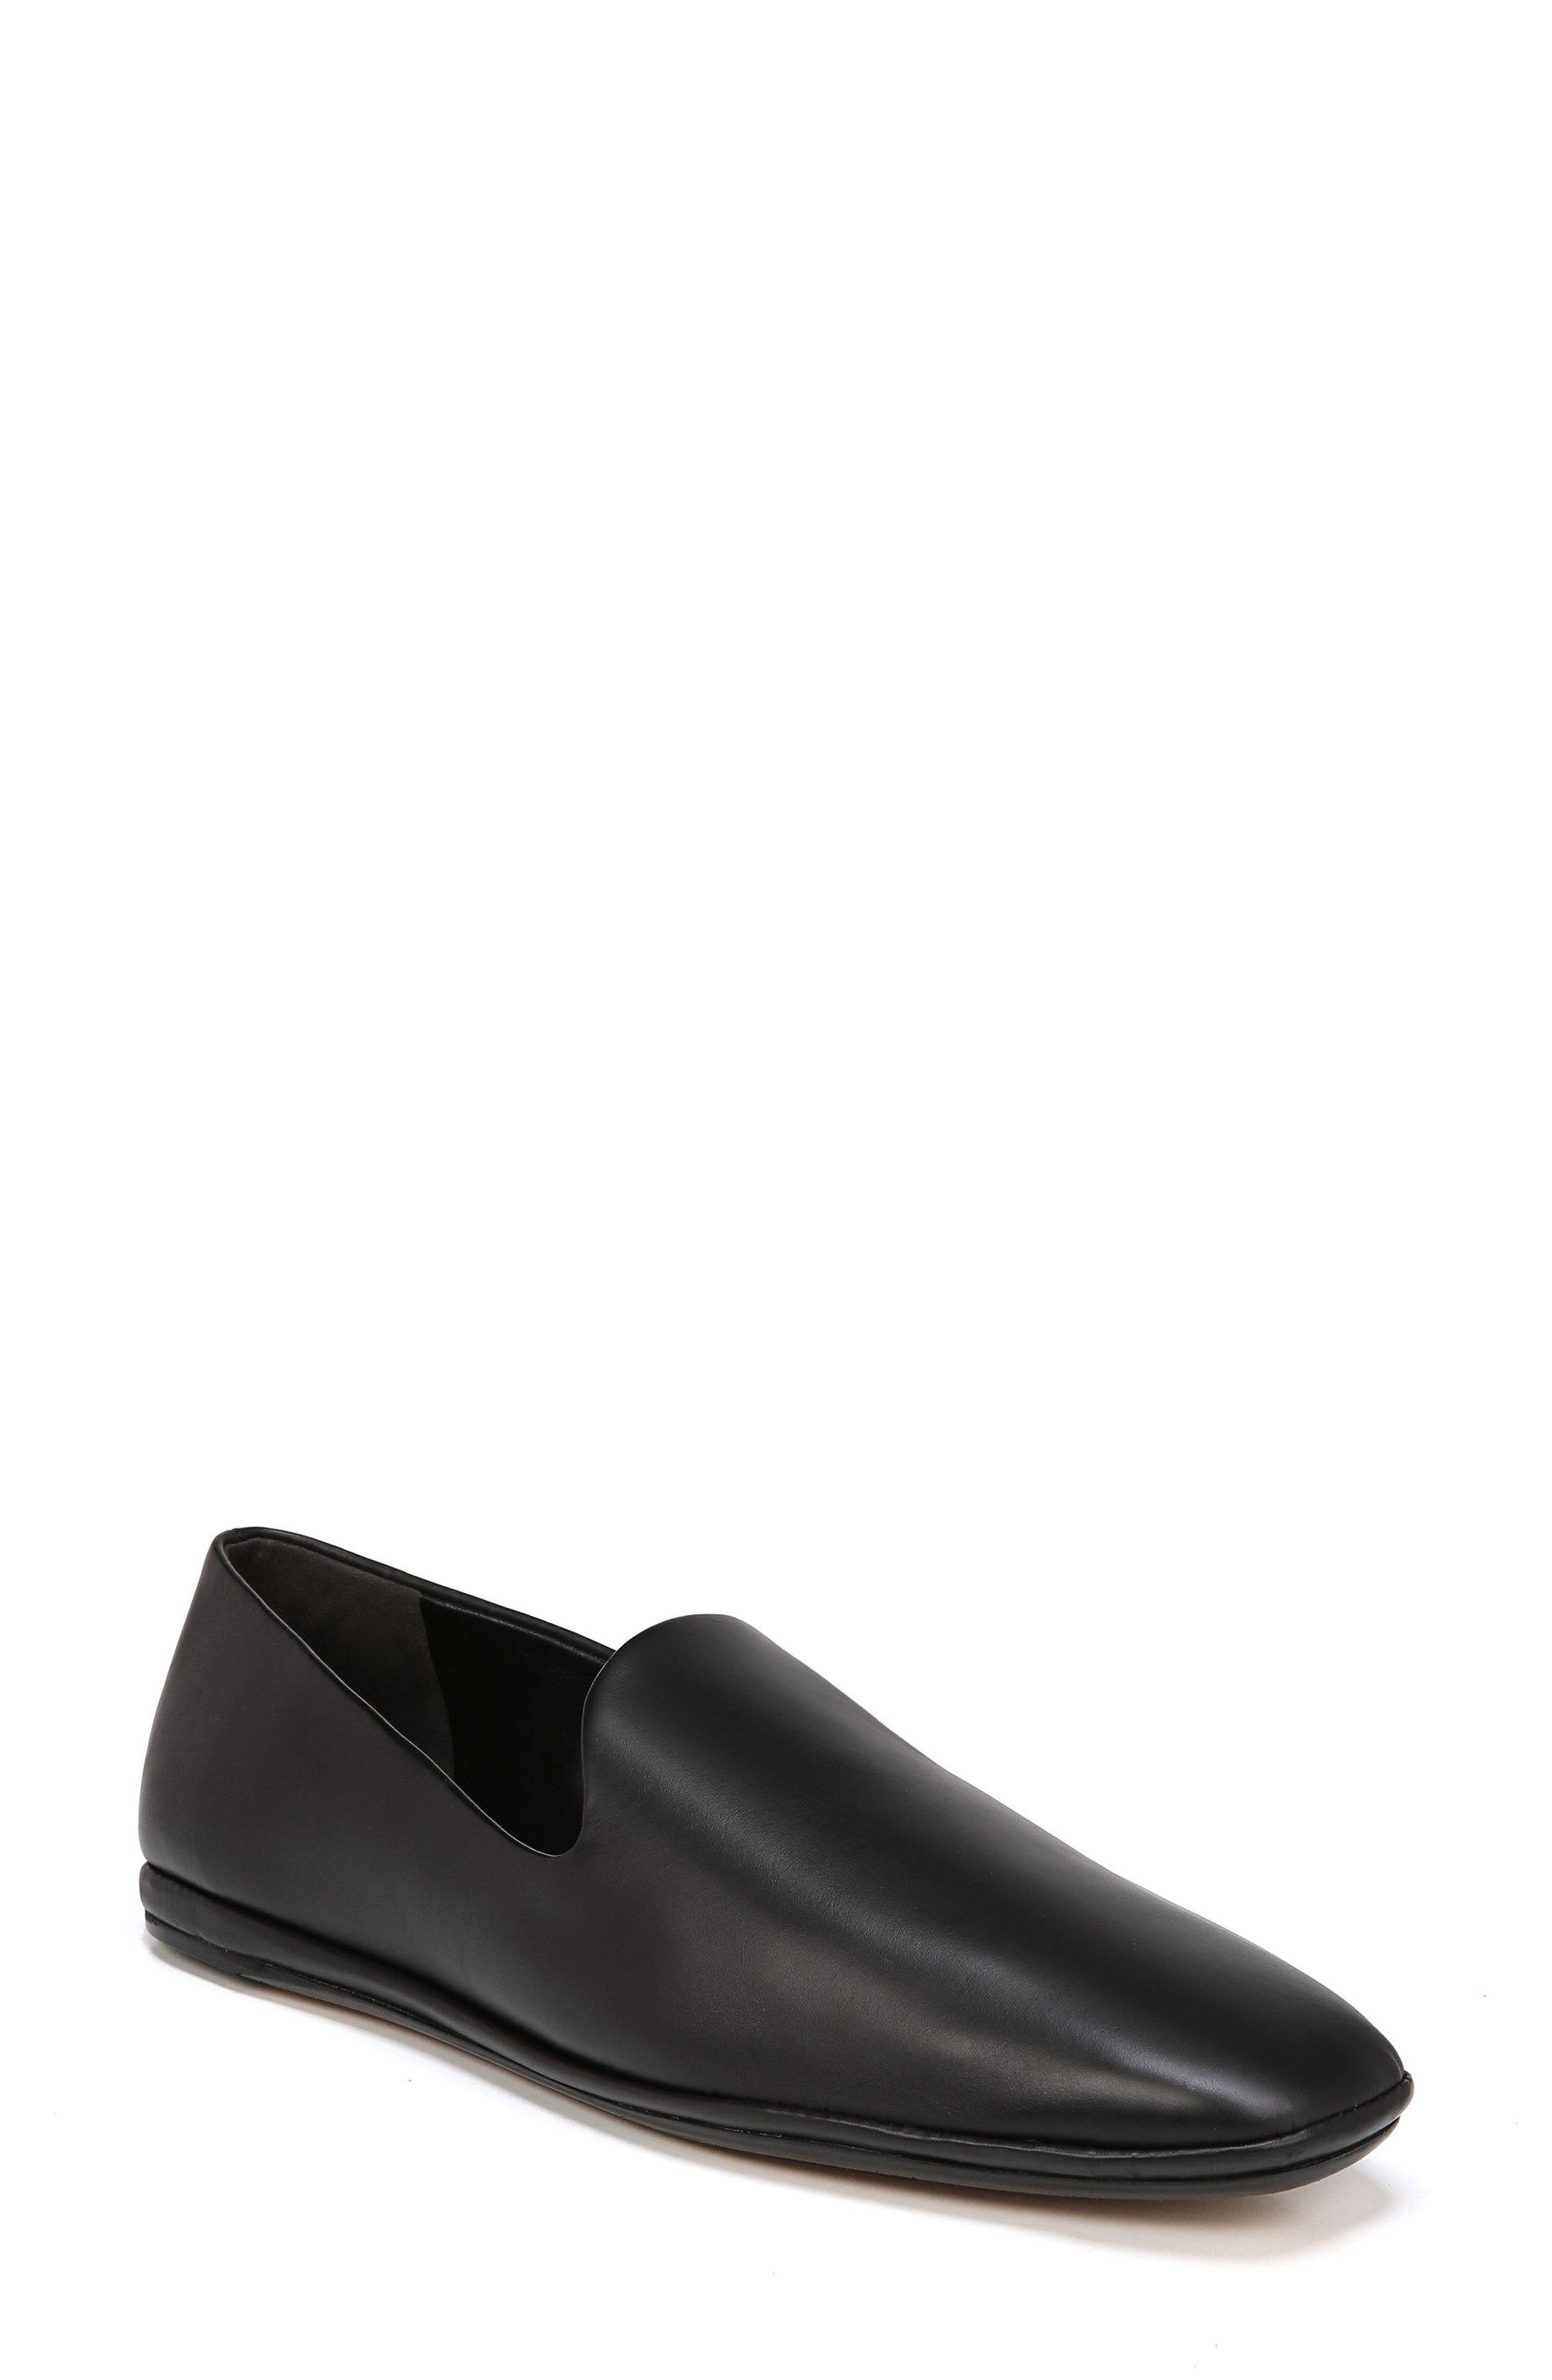 Paz Venetian Loafer,                             Main thumbnail 1, color,                             BLACK